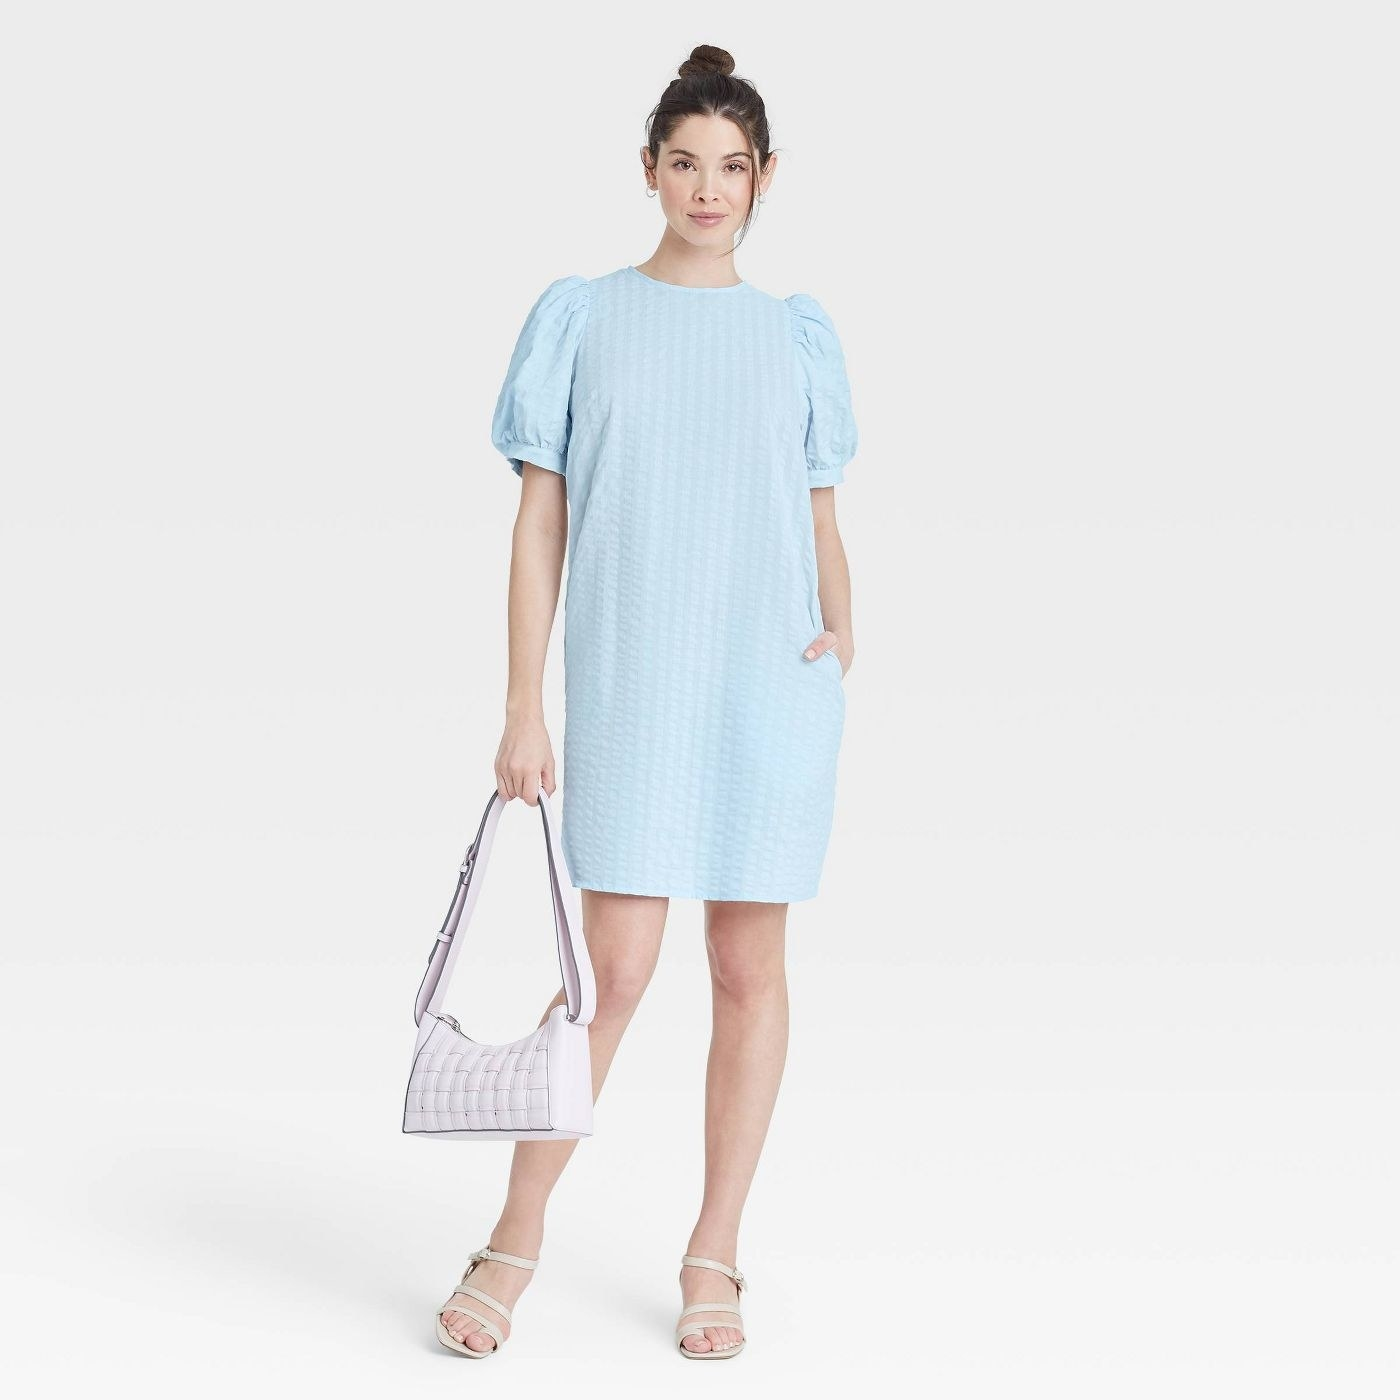 Model wearing blue dress with puff sleeves, goes past the thighs